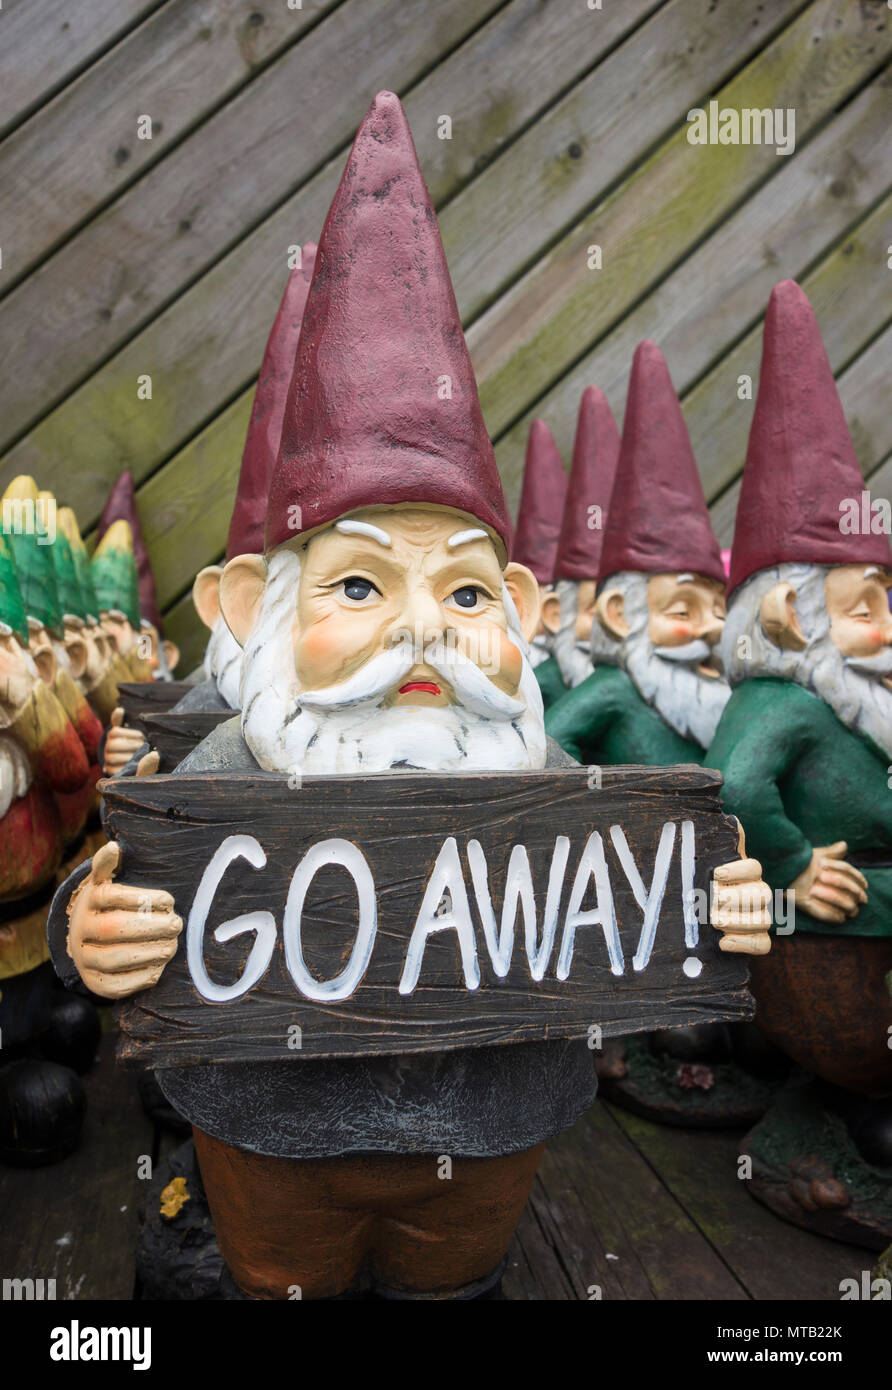 Welcome and Go Away garden gnomes mirror the UK's divided public opinion relating to Brexit - Stock Image